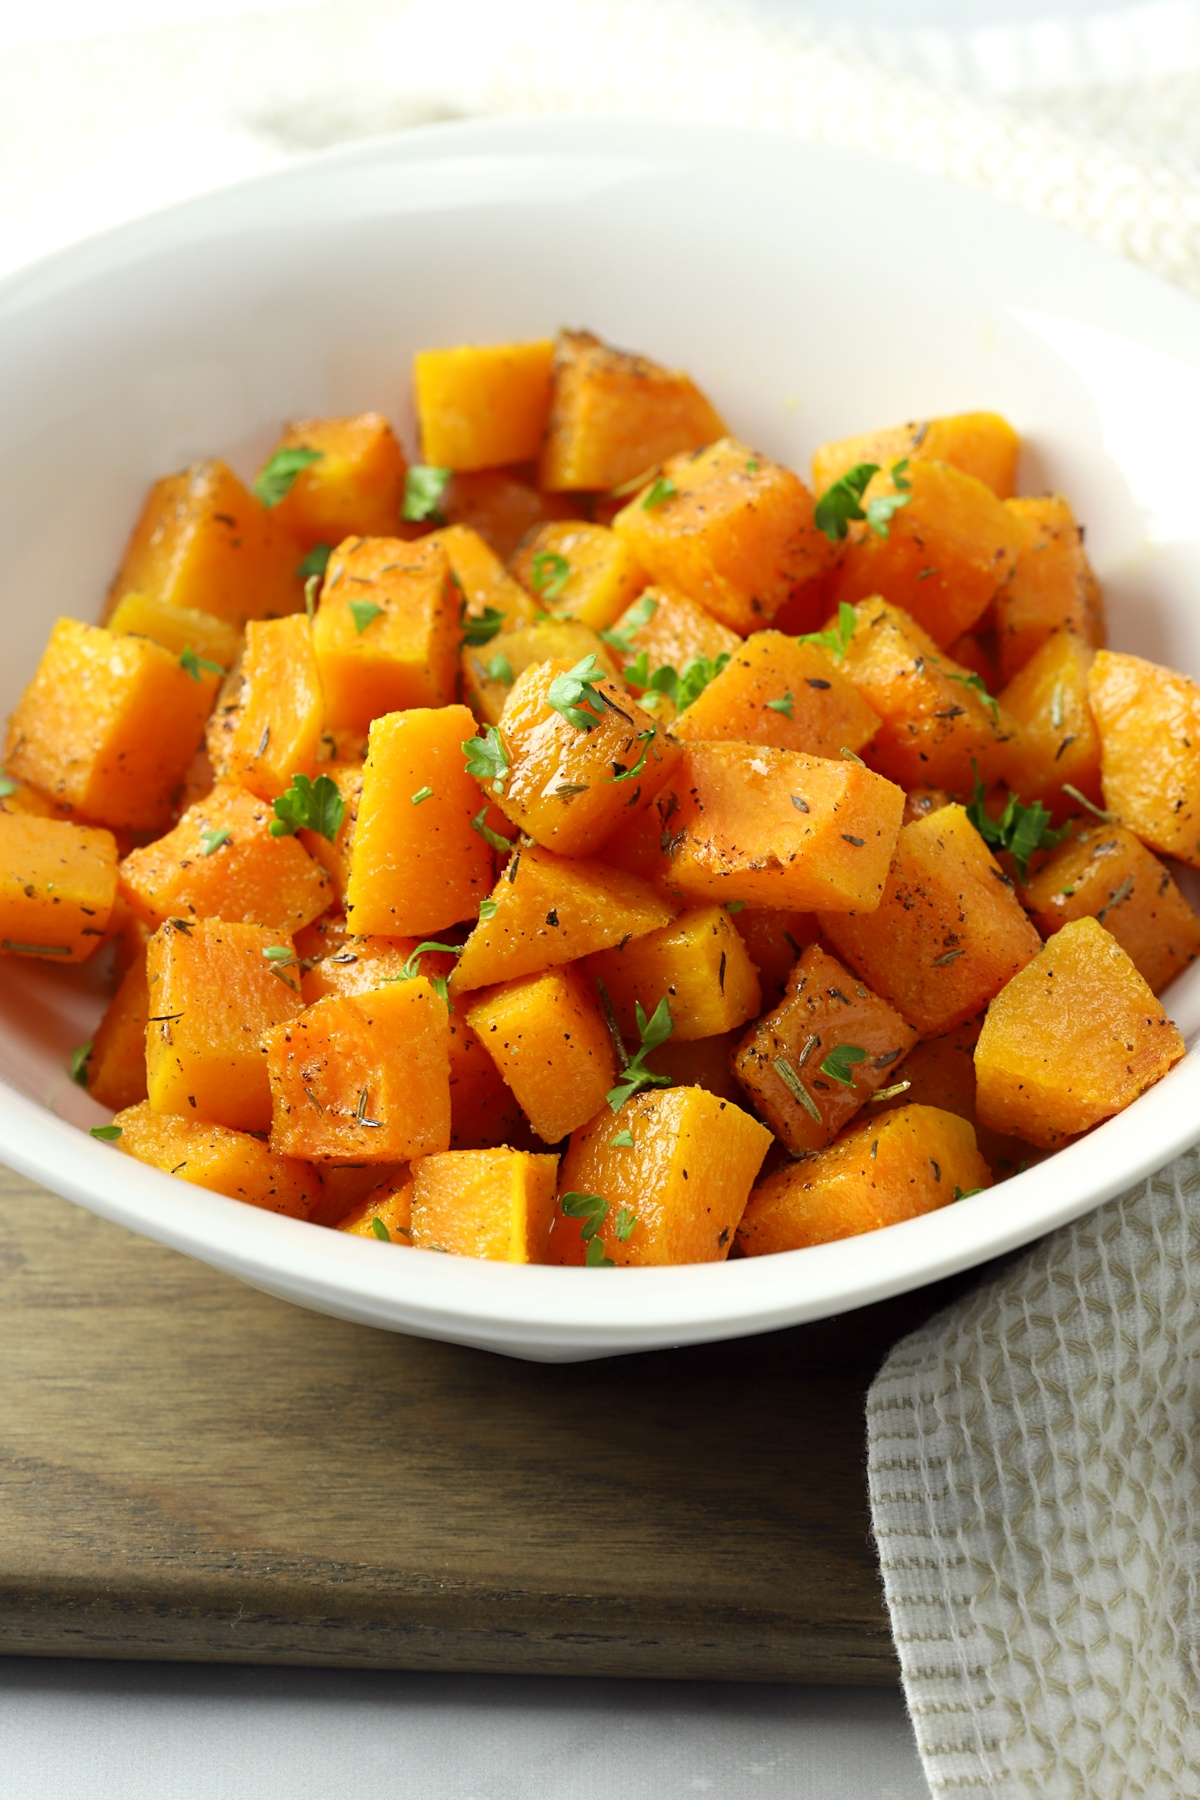 A white serving bowl filled with roasted butternut squash.